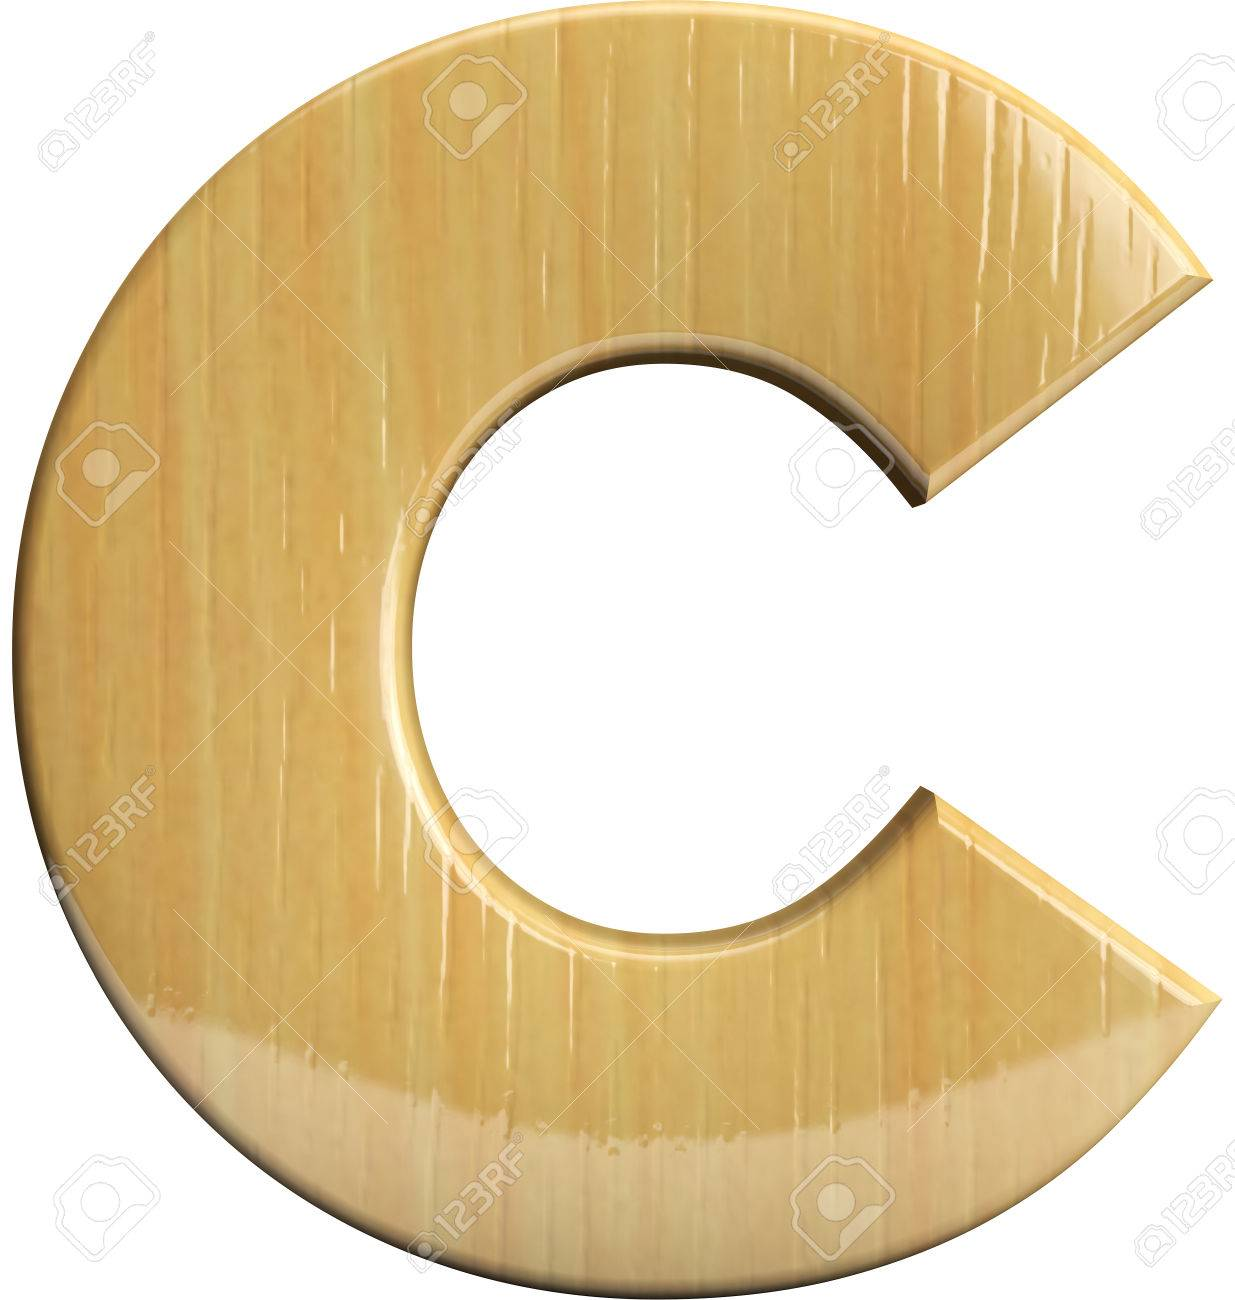 stock photo wooden letter c wood character isolated on white